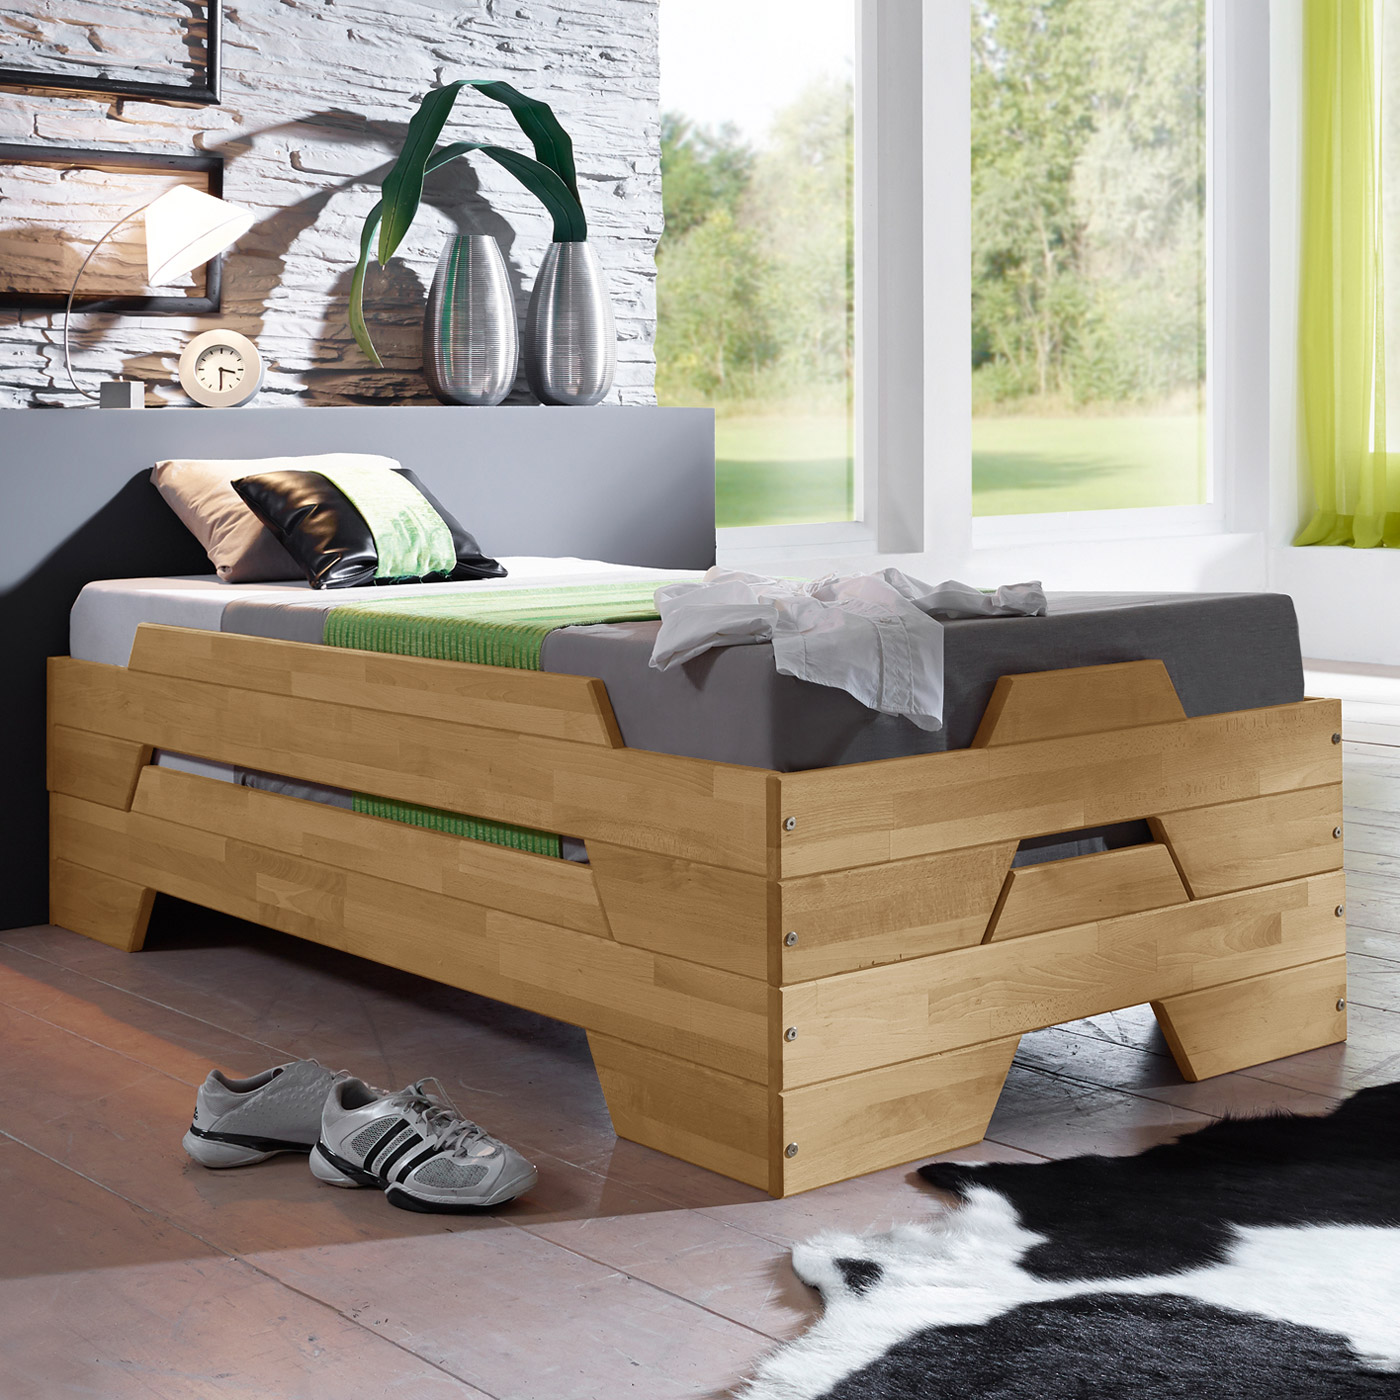 funktionsbett 140 200 mit lattenrost und matratze. Black Bedroom Furniture Sets. Home Design Ideas